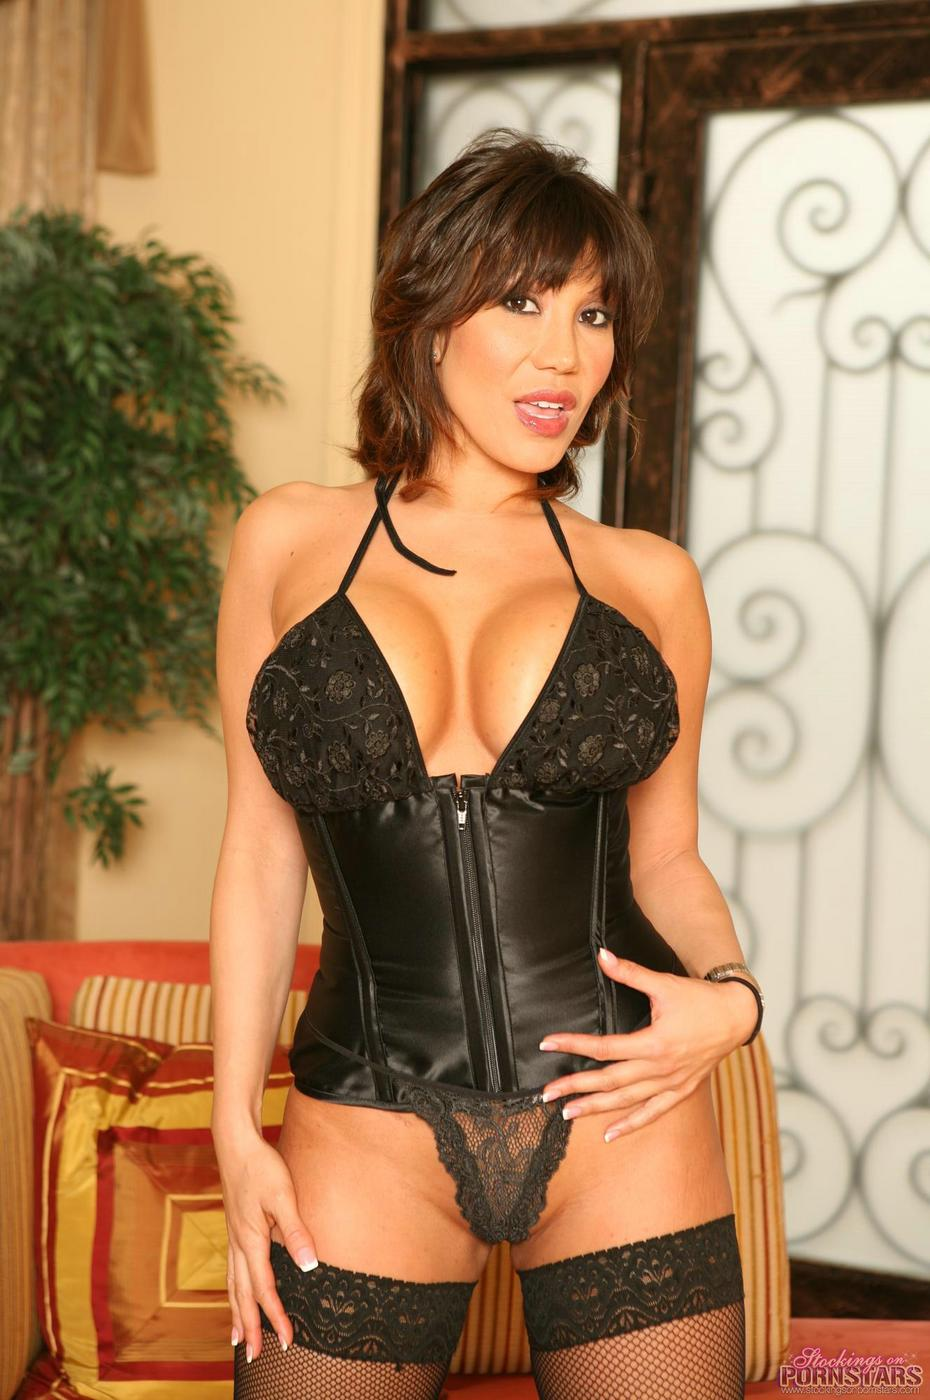 ava devine busting out of her corset and fishnet stockings - mobile